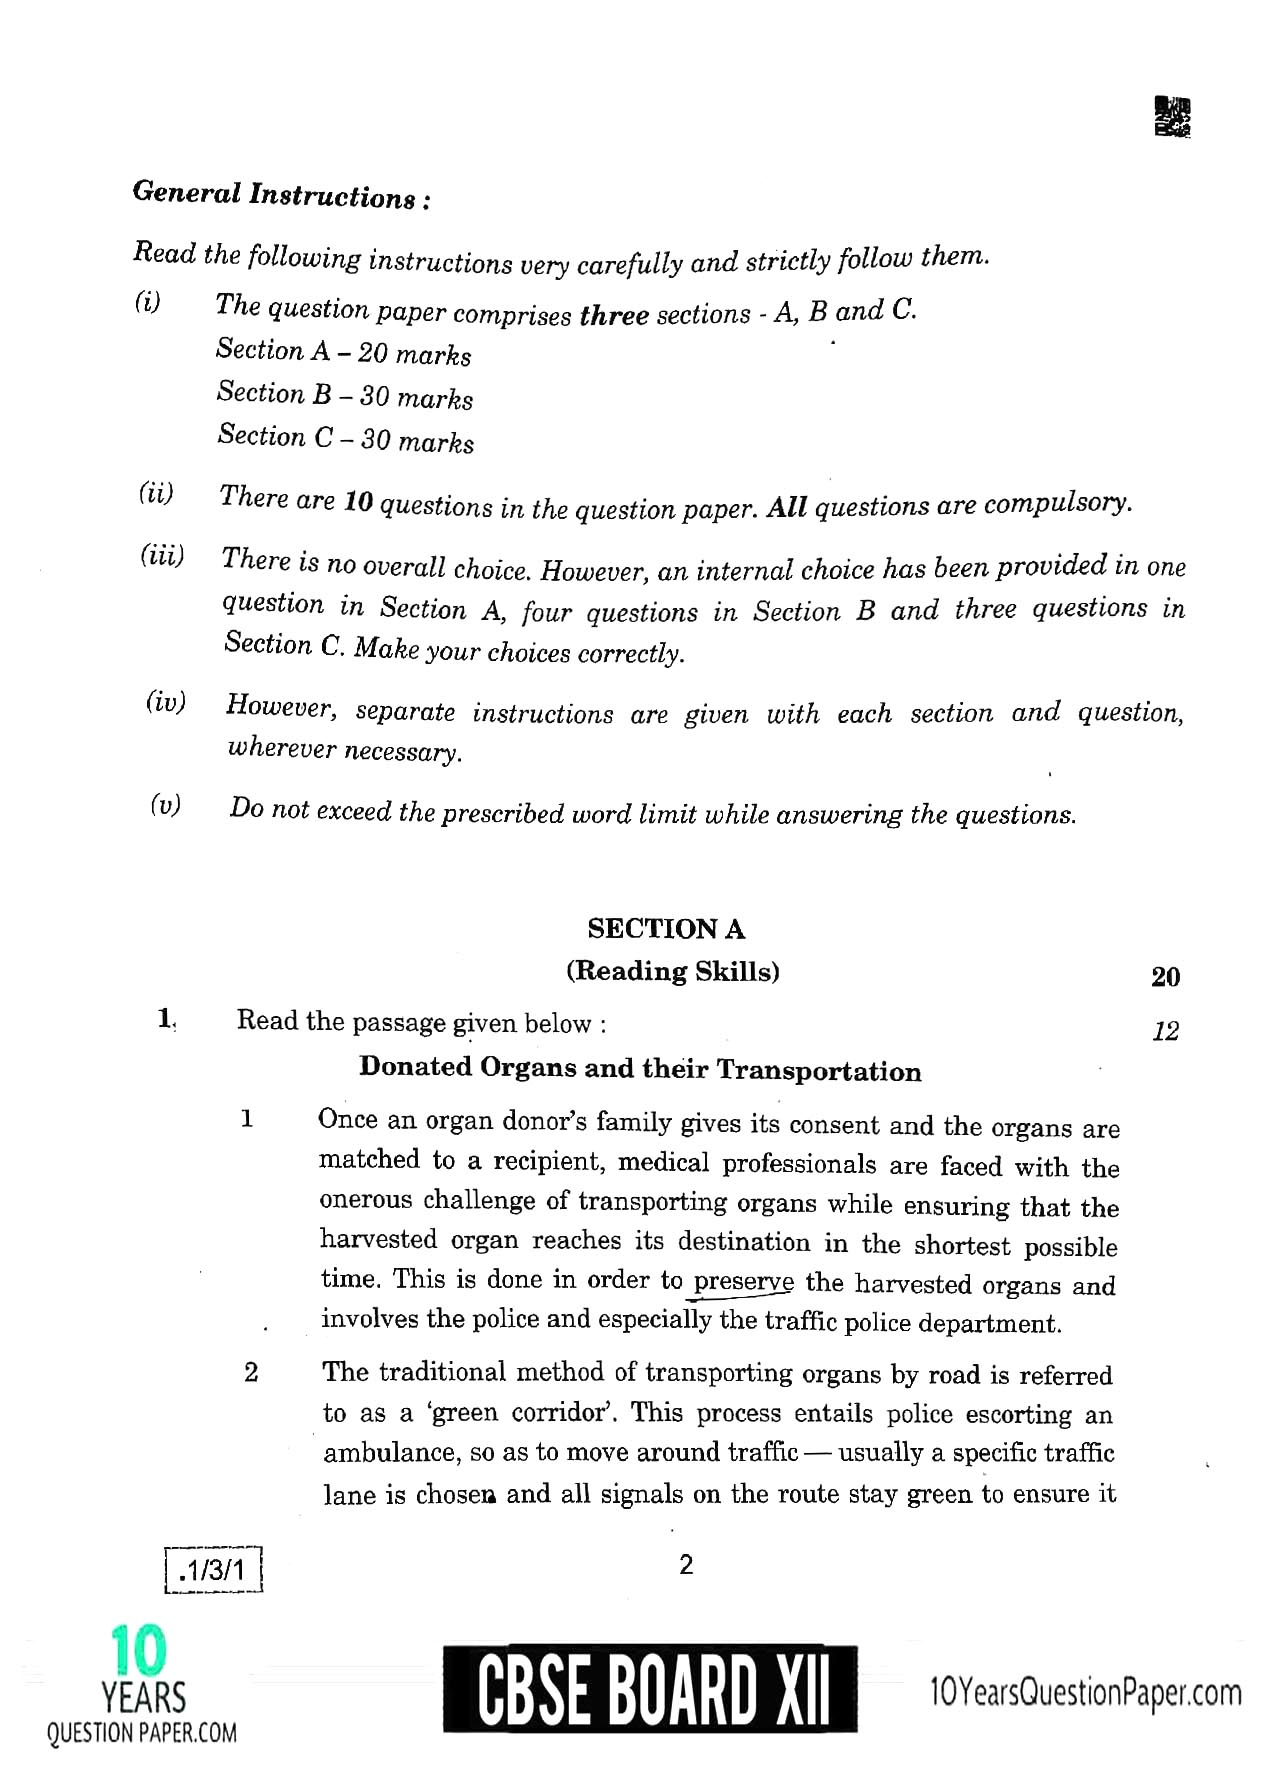 CBSE Class 12 English 2020 Question Paper 02